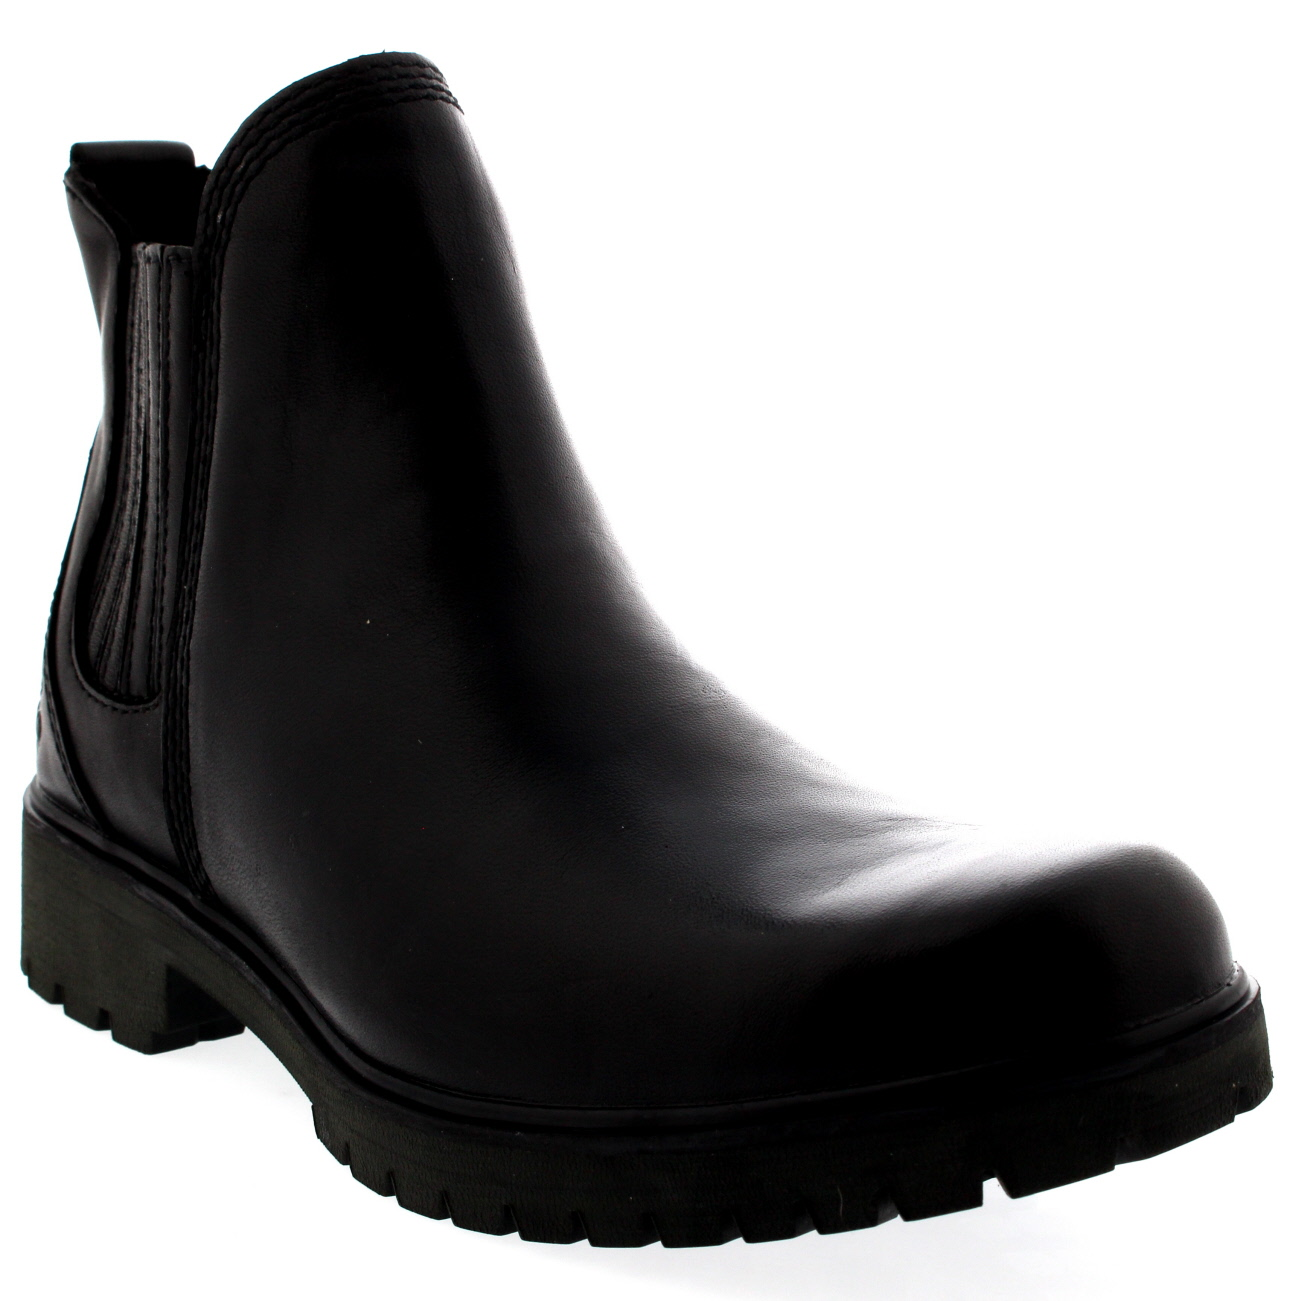 Excellent BELGRAVIA Womens Leather Chelsea Boot | Fashion | Pinterest | We The Ou0026#39;jays And Womens Leather ...